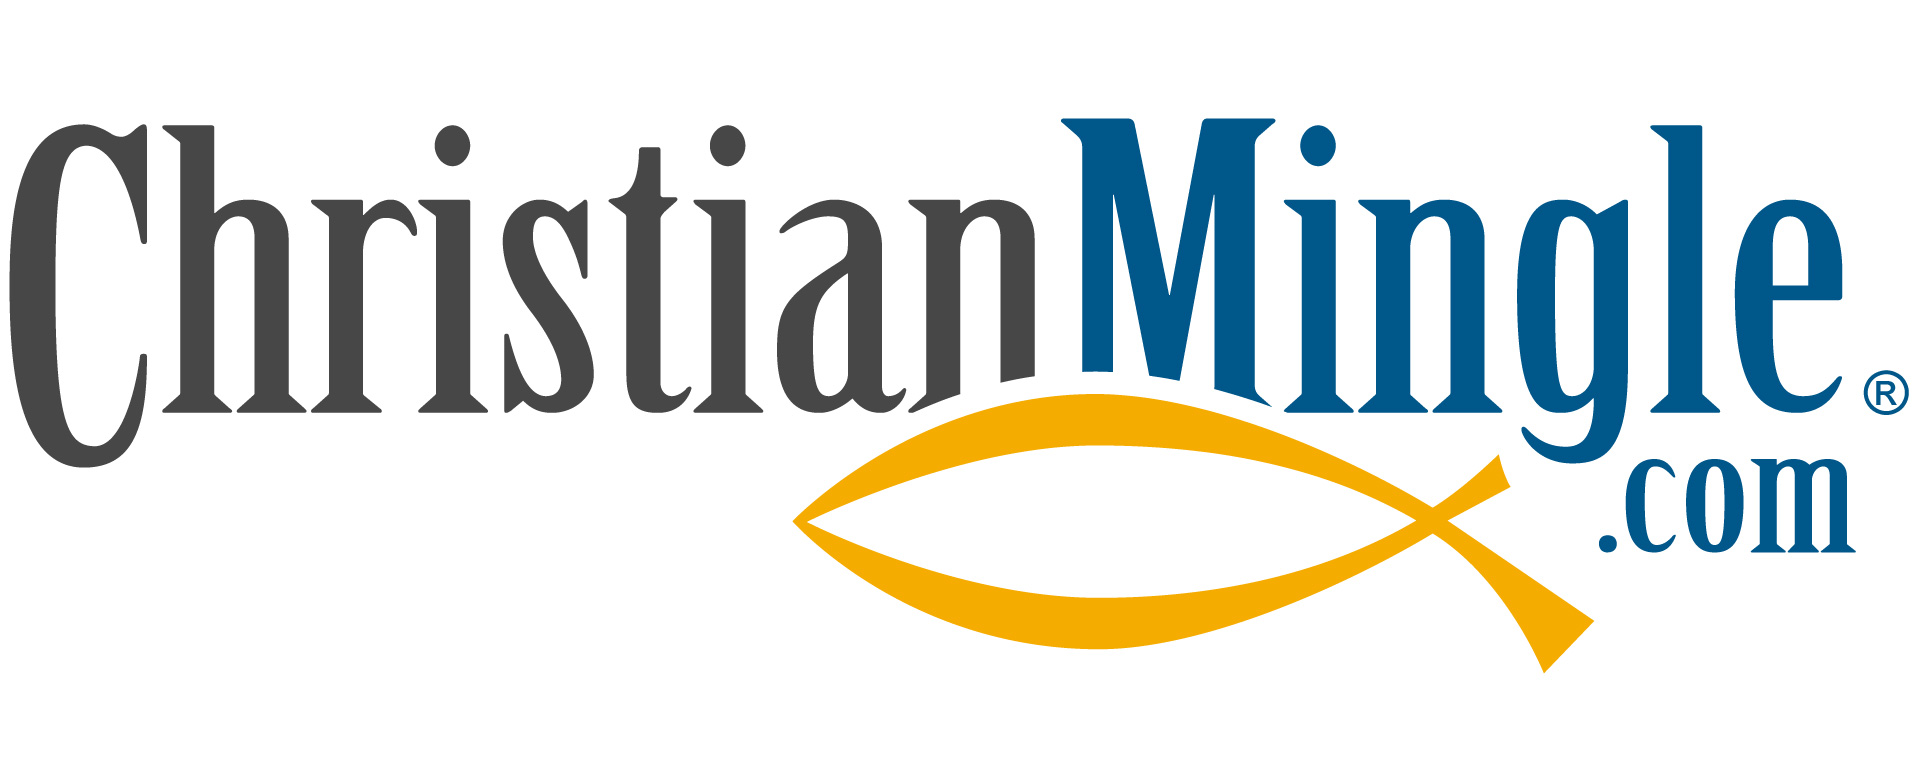 Christian mingle discount offers